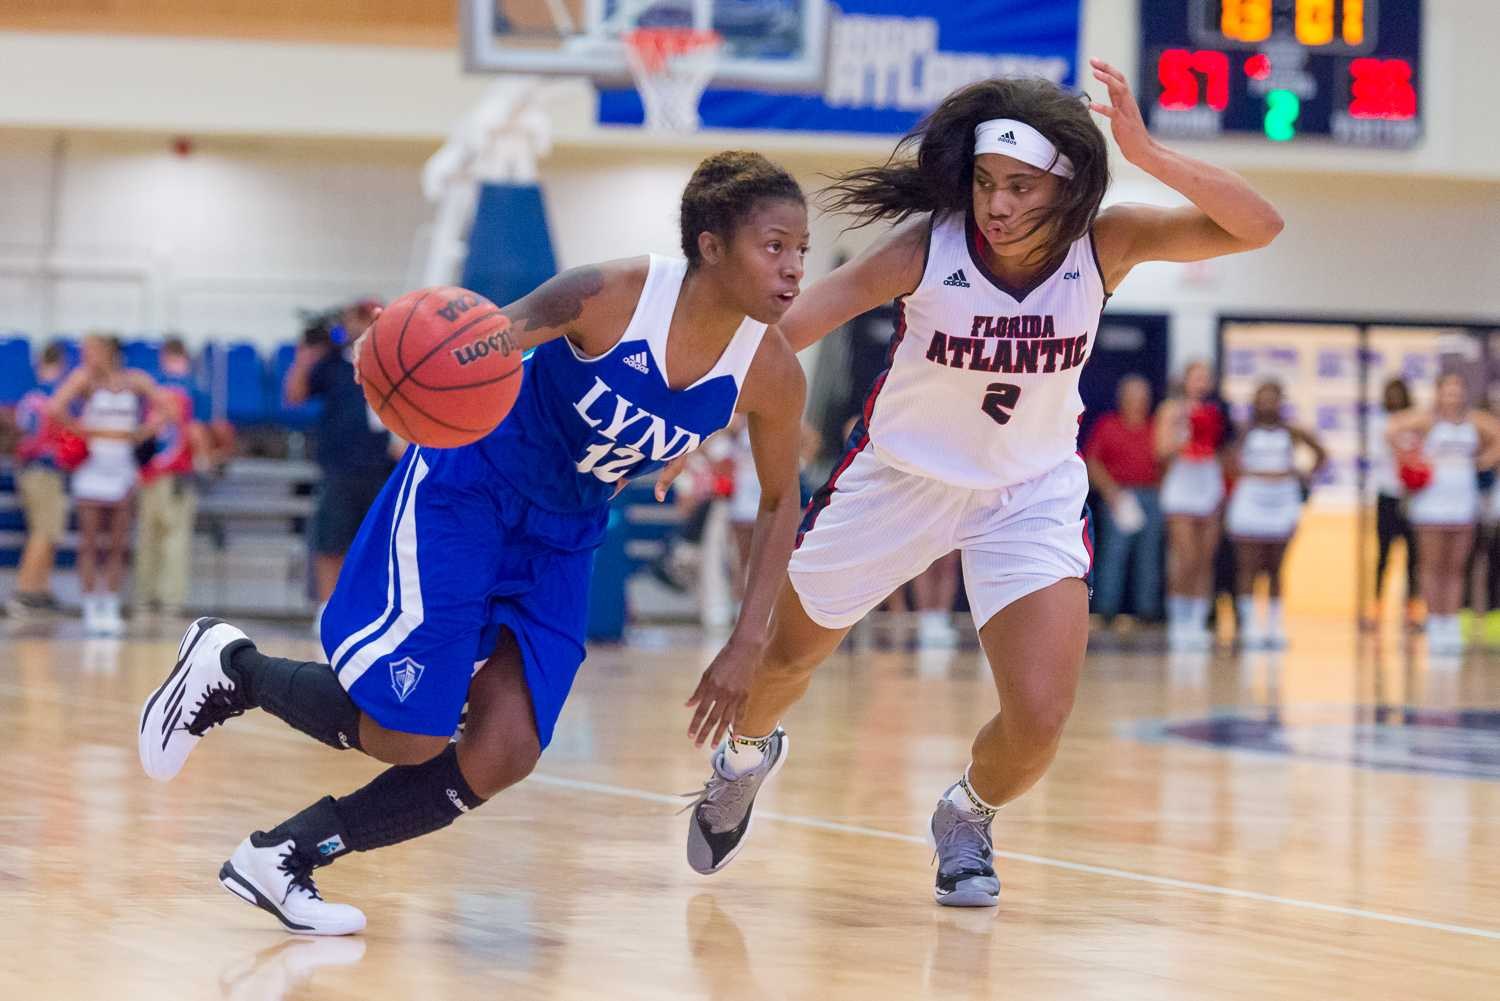 Lynn guard Sharneka McCatty moves towards the basket as Owl guard Shaneese Bailey attempts to impede her progress.